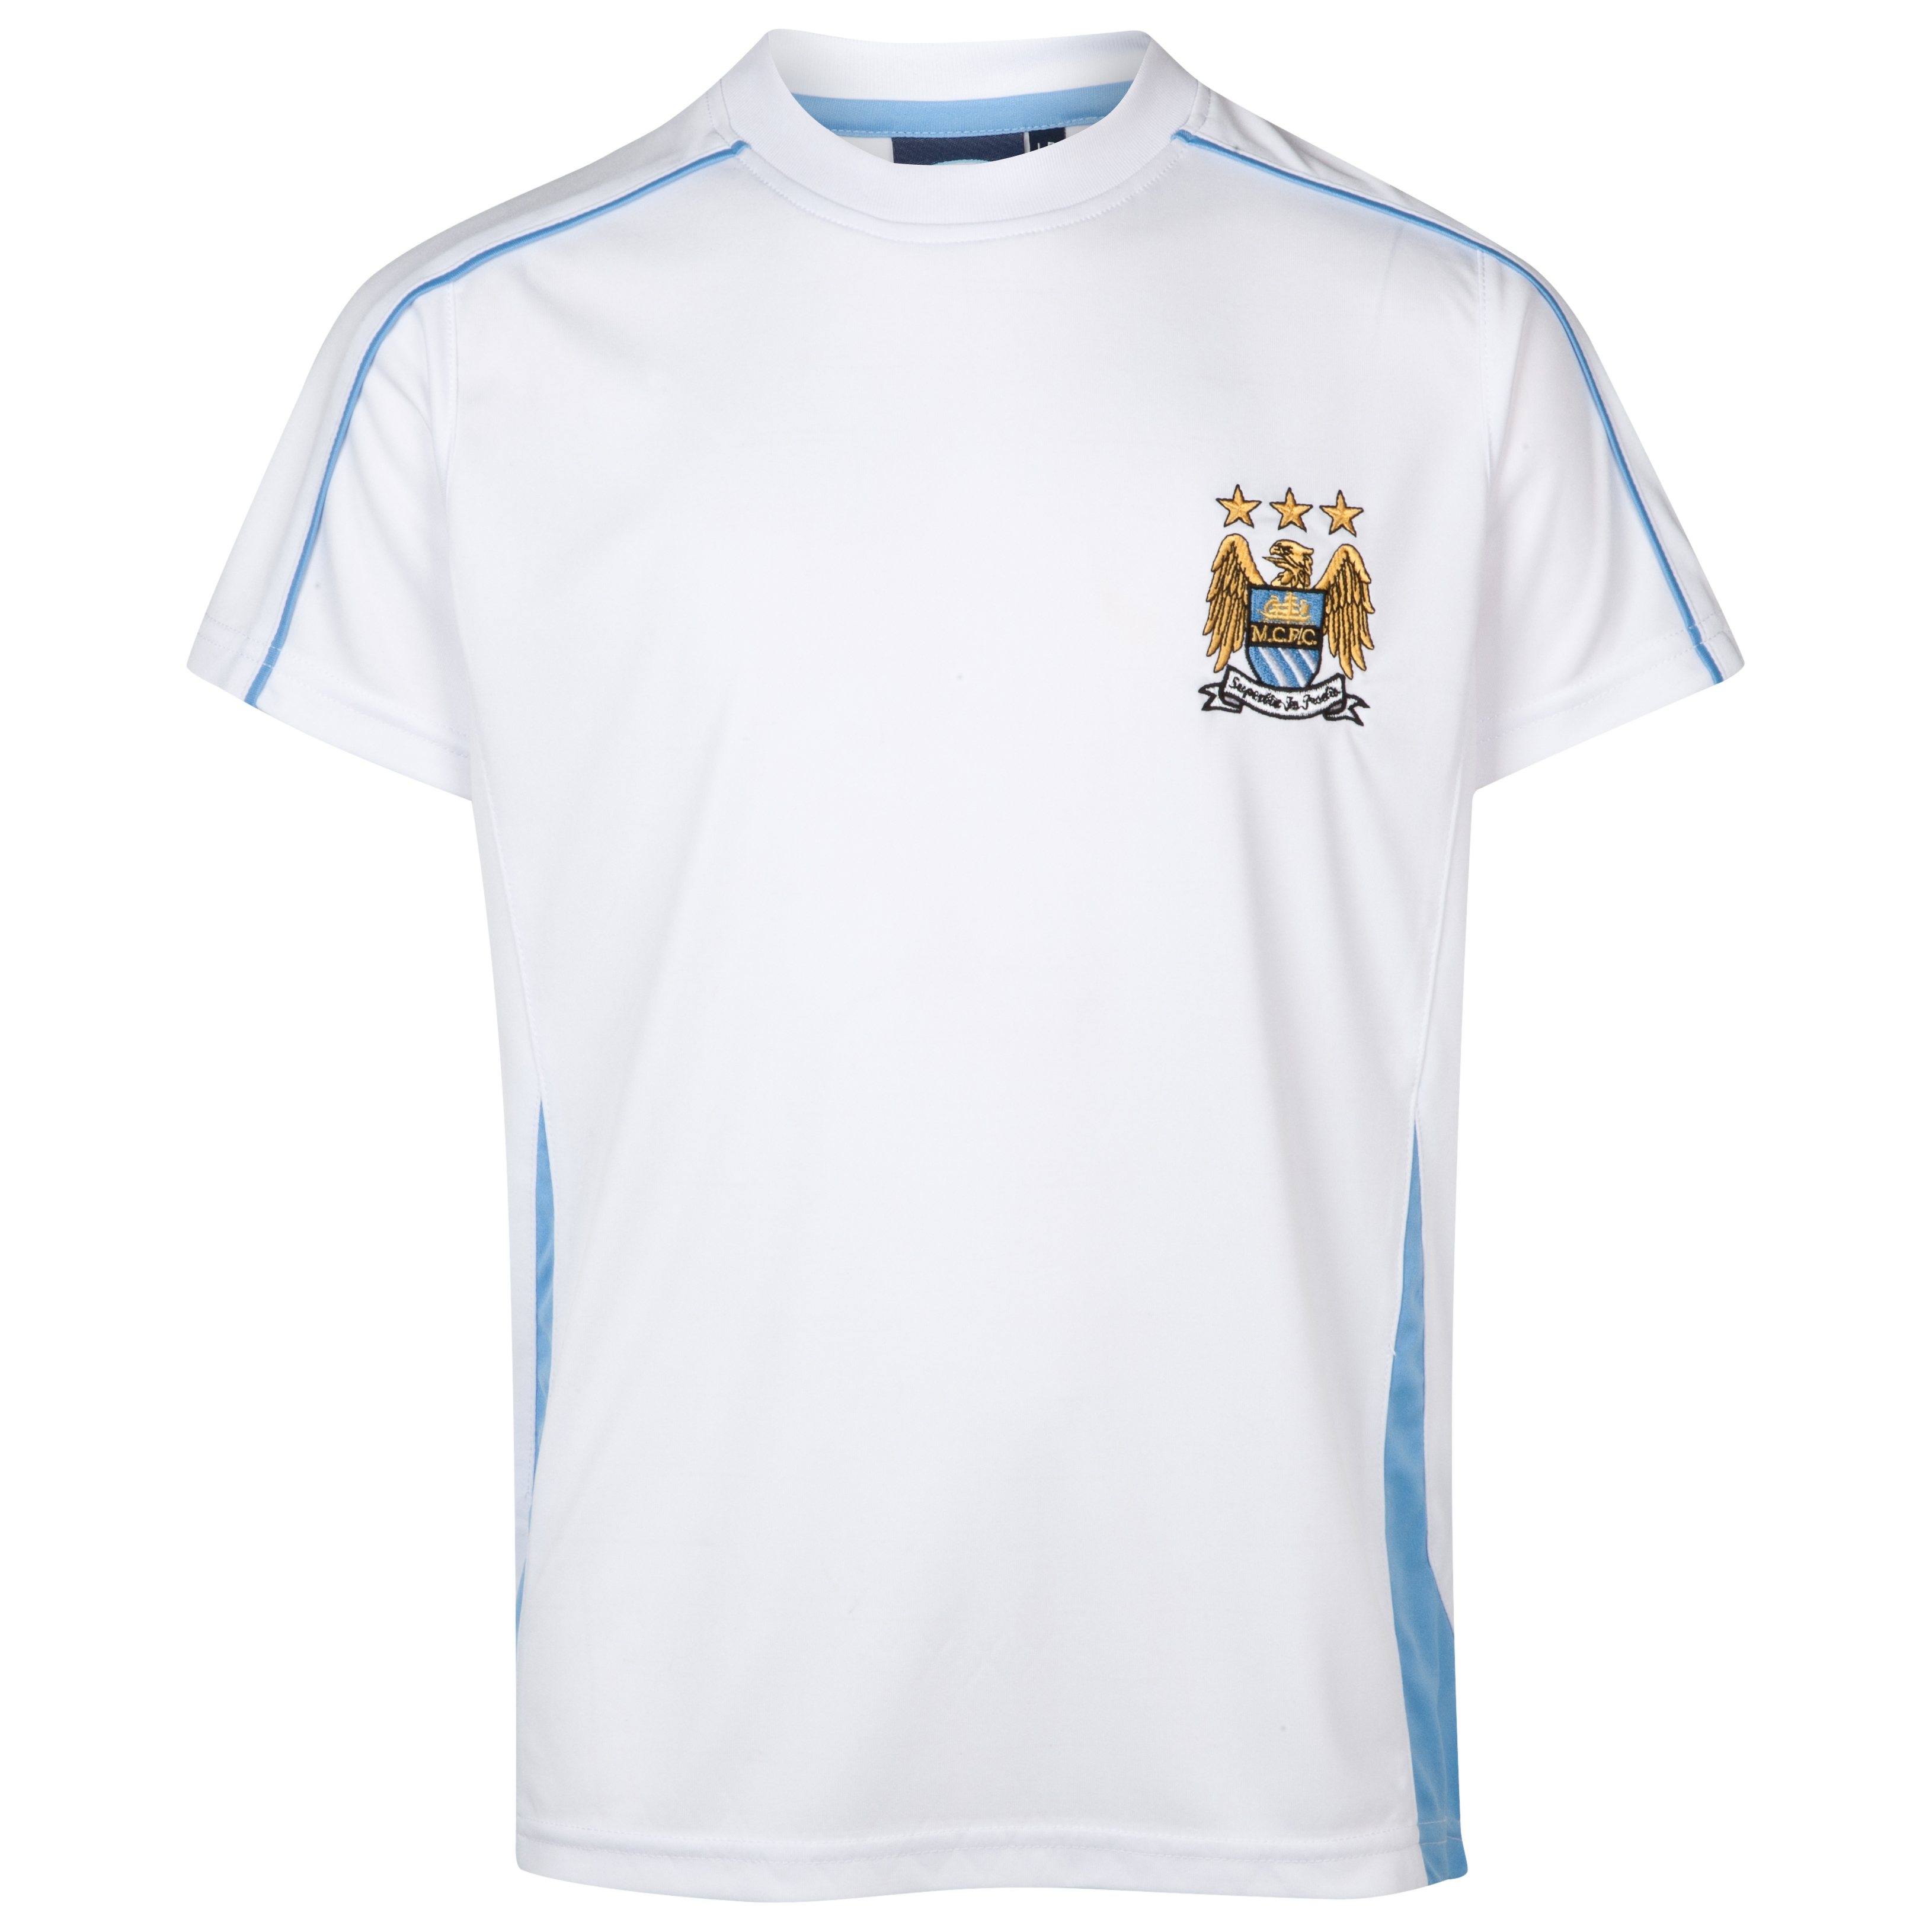 Manchester City Essential Sheen T-Shirt - White - Older Boys